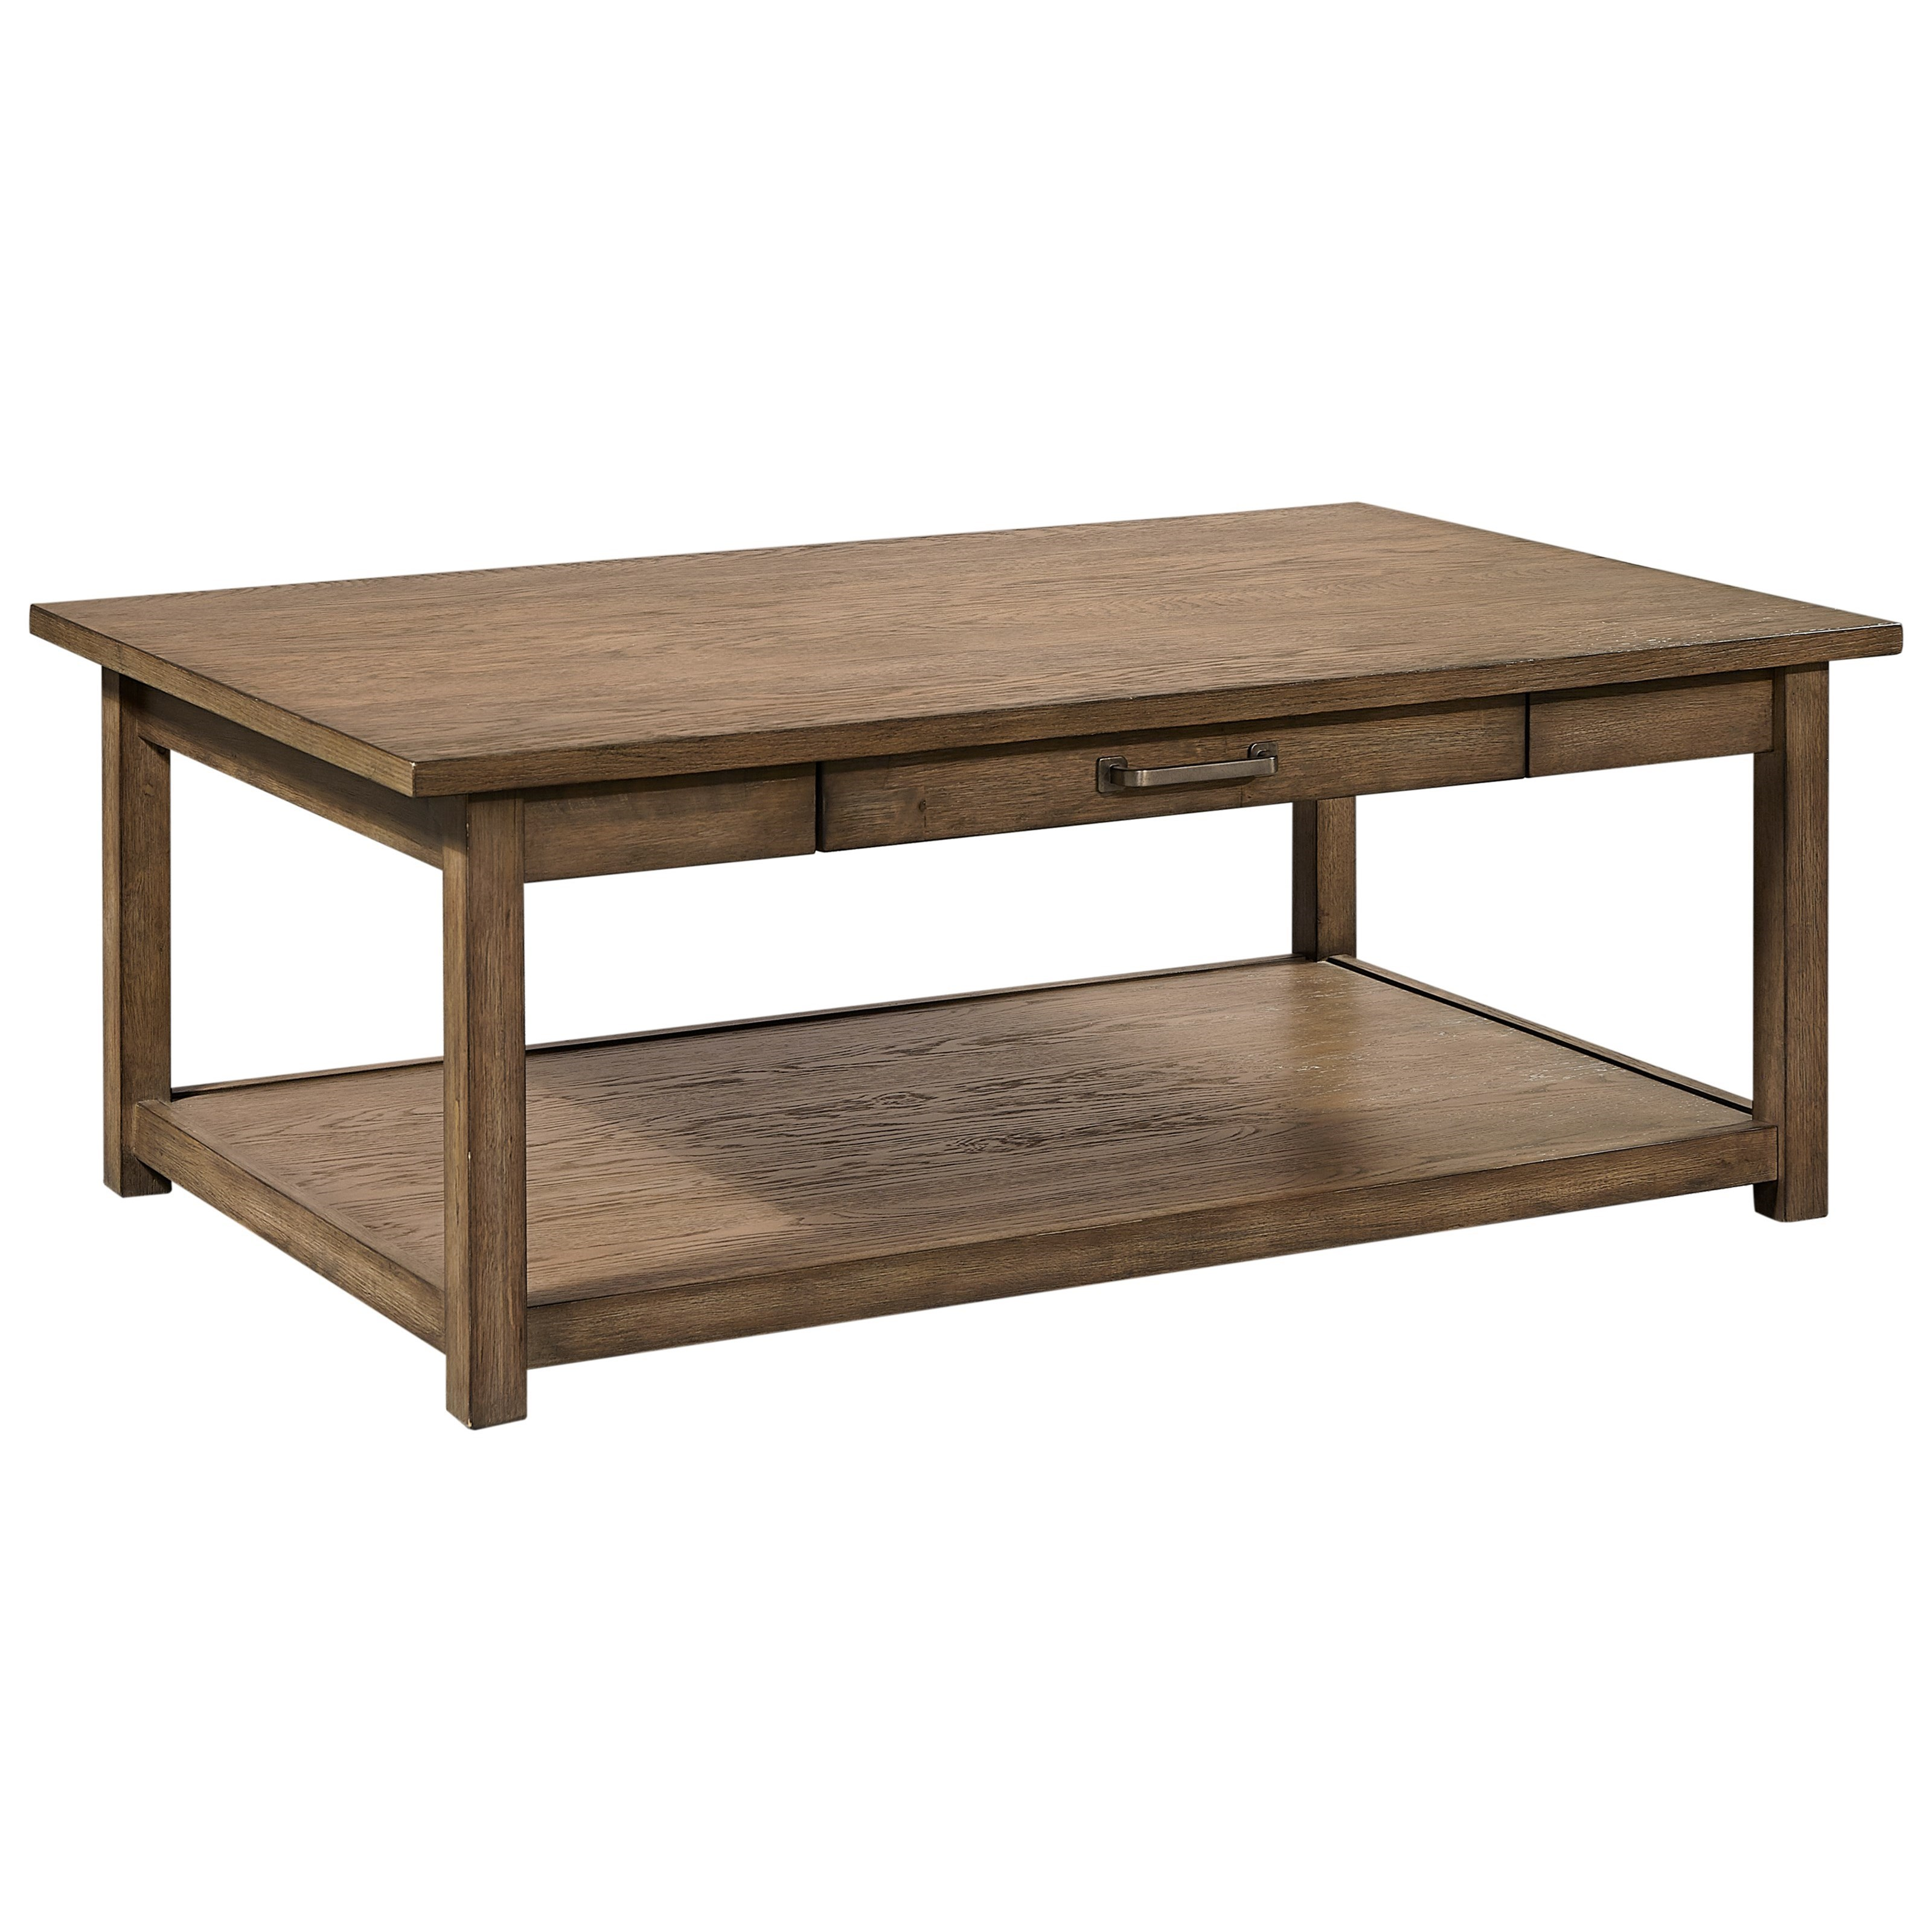 Aspen Home Coffee Table.Terrace Point Casual Cocktail Table With Drawer By Aspenhome At Dunk Bright Furniture